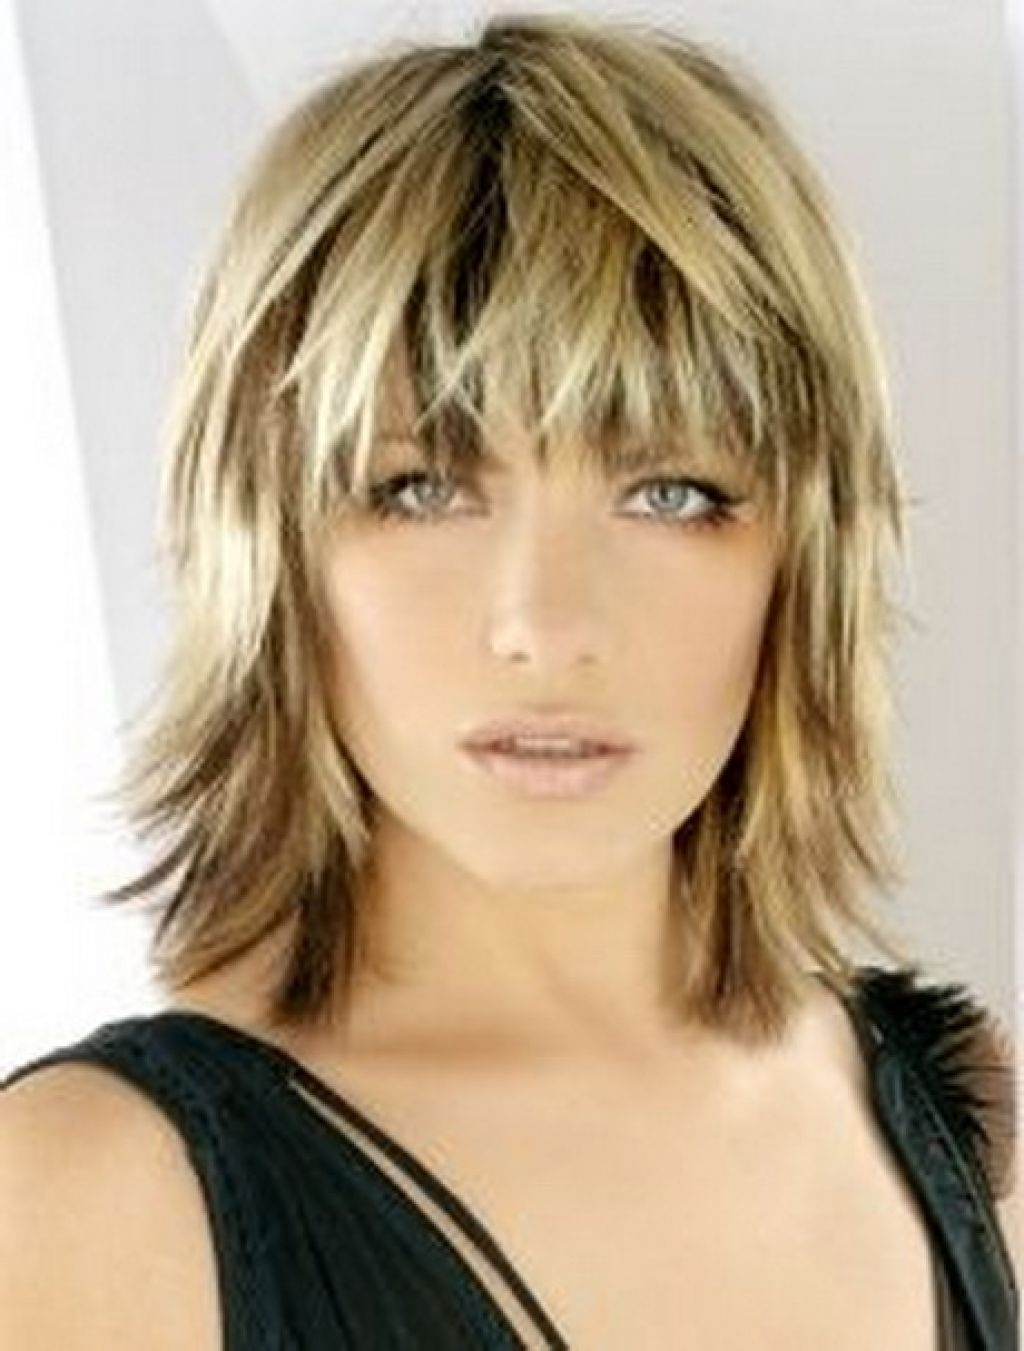 Blonde Medium Length Choppy Shag Haircut With Wispy Bangs And Dark Regarding 2018 Shaggy Hairstyles With Fringe (View 3 of 15)